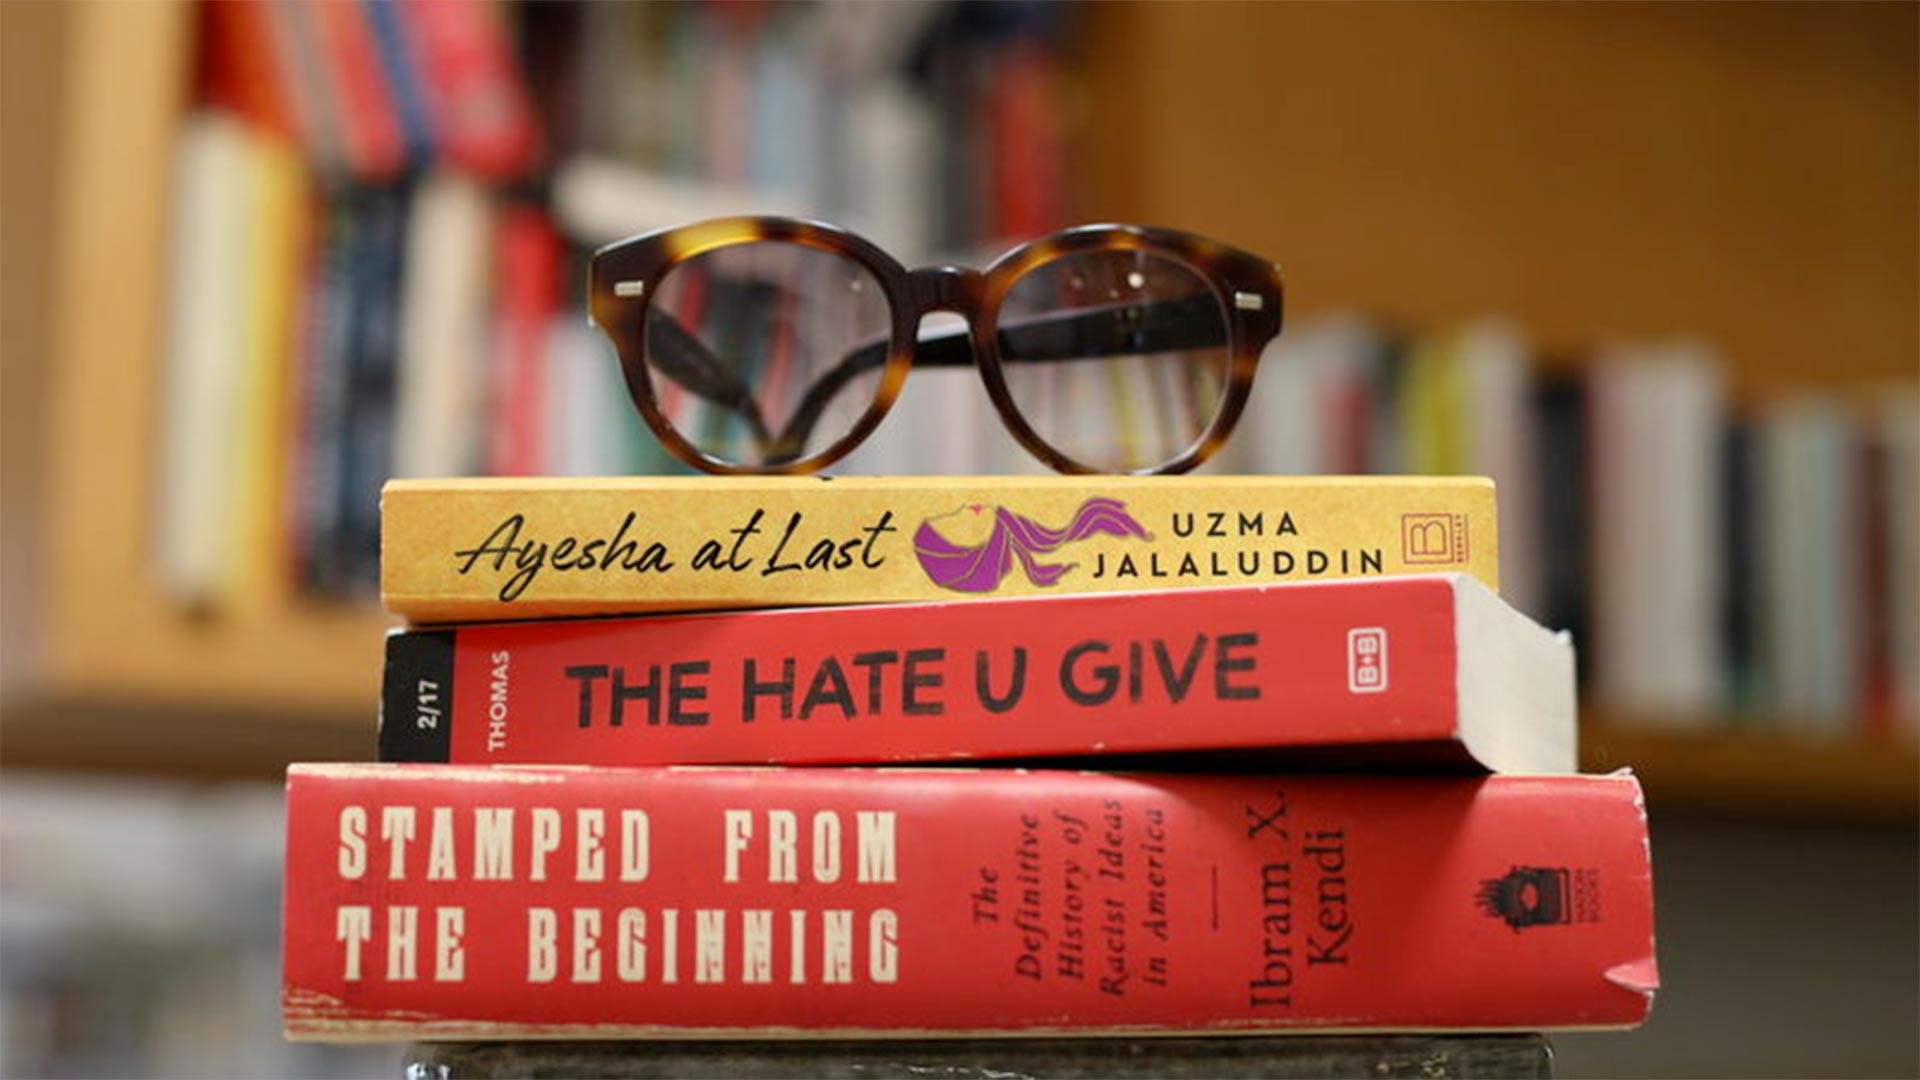 A few of the great books that our listeners recommend for summer reading.